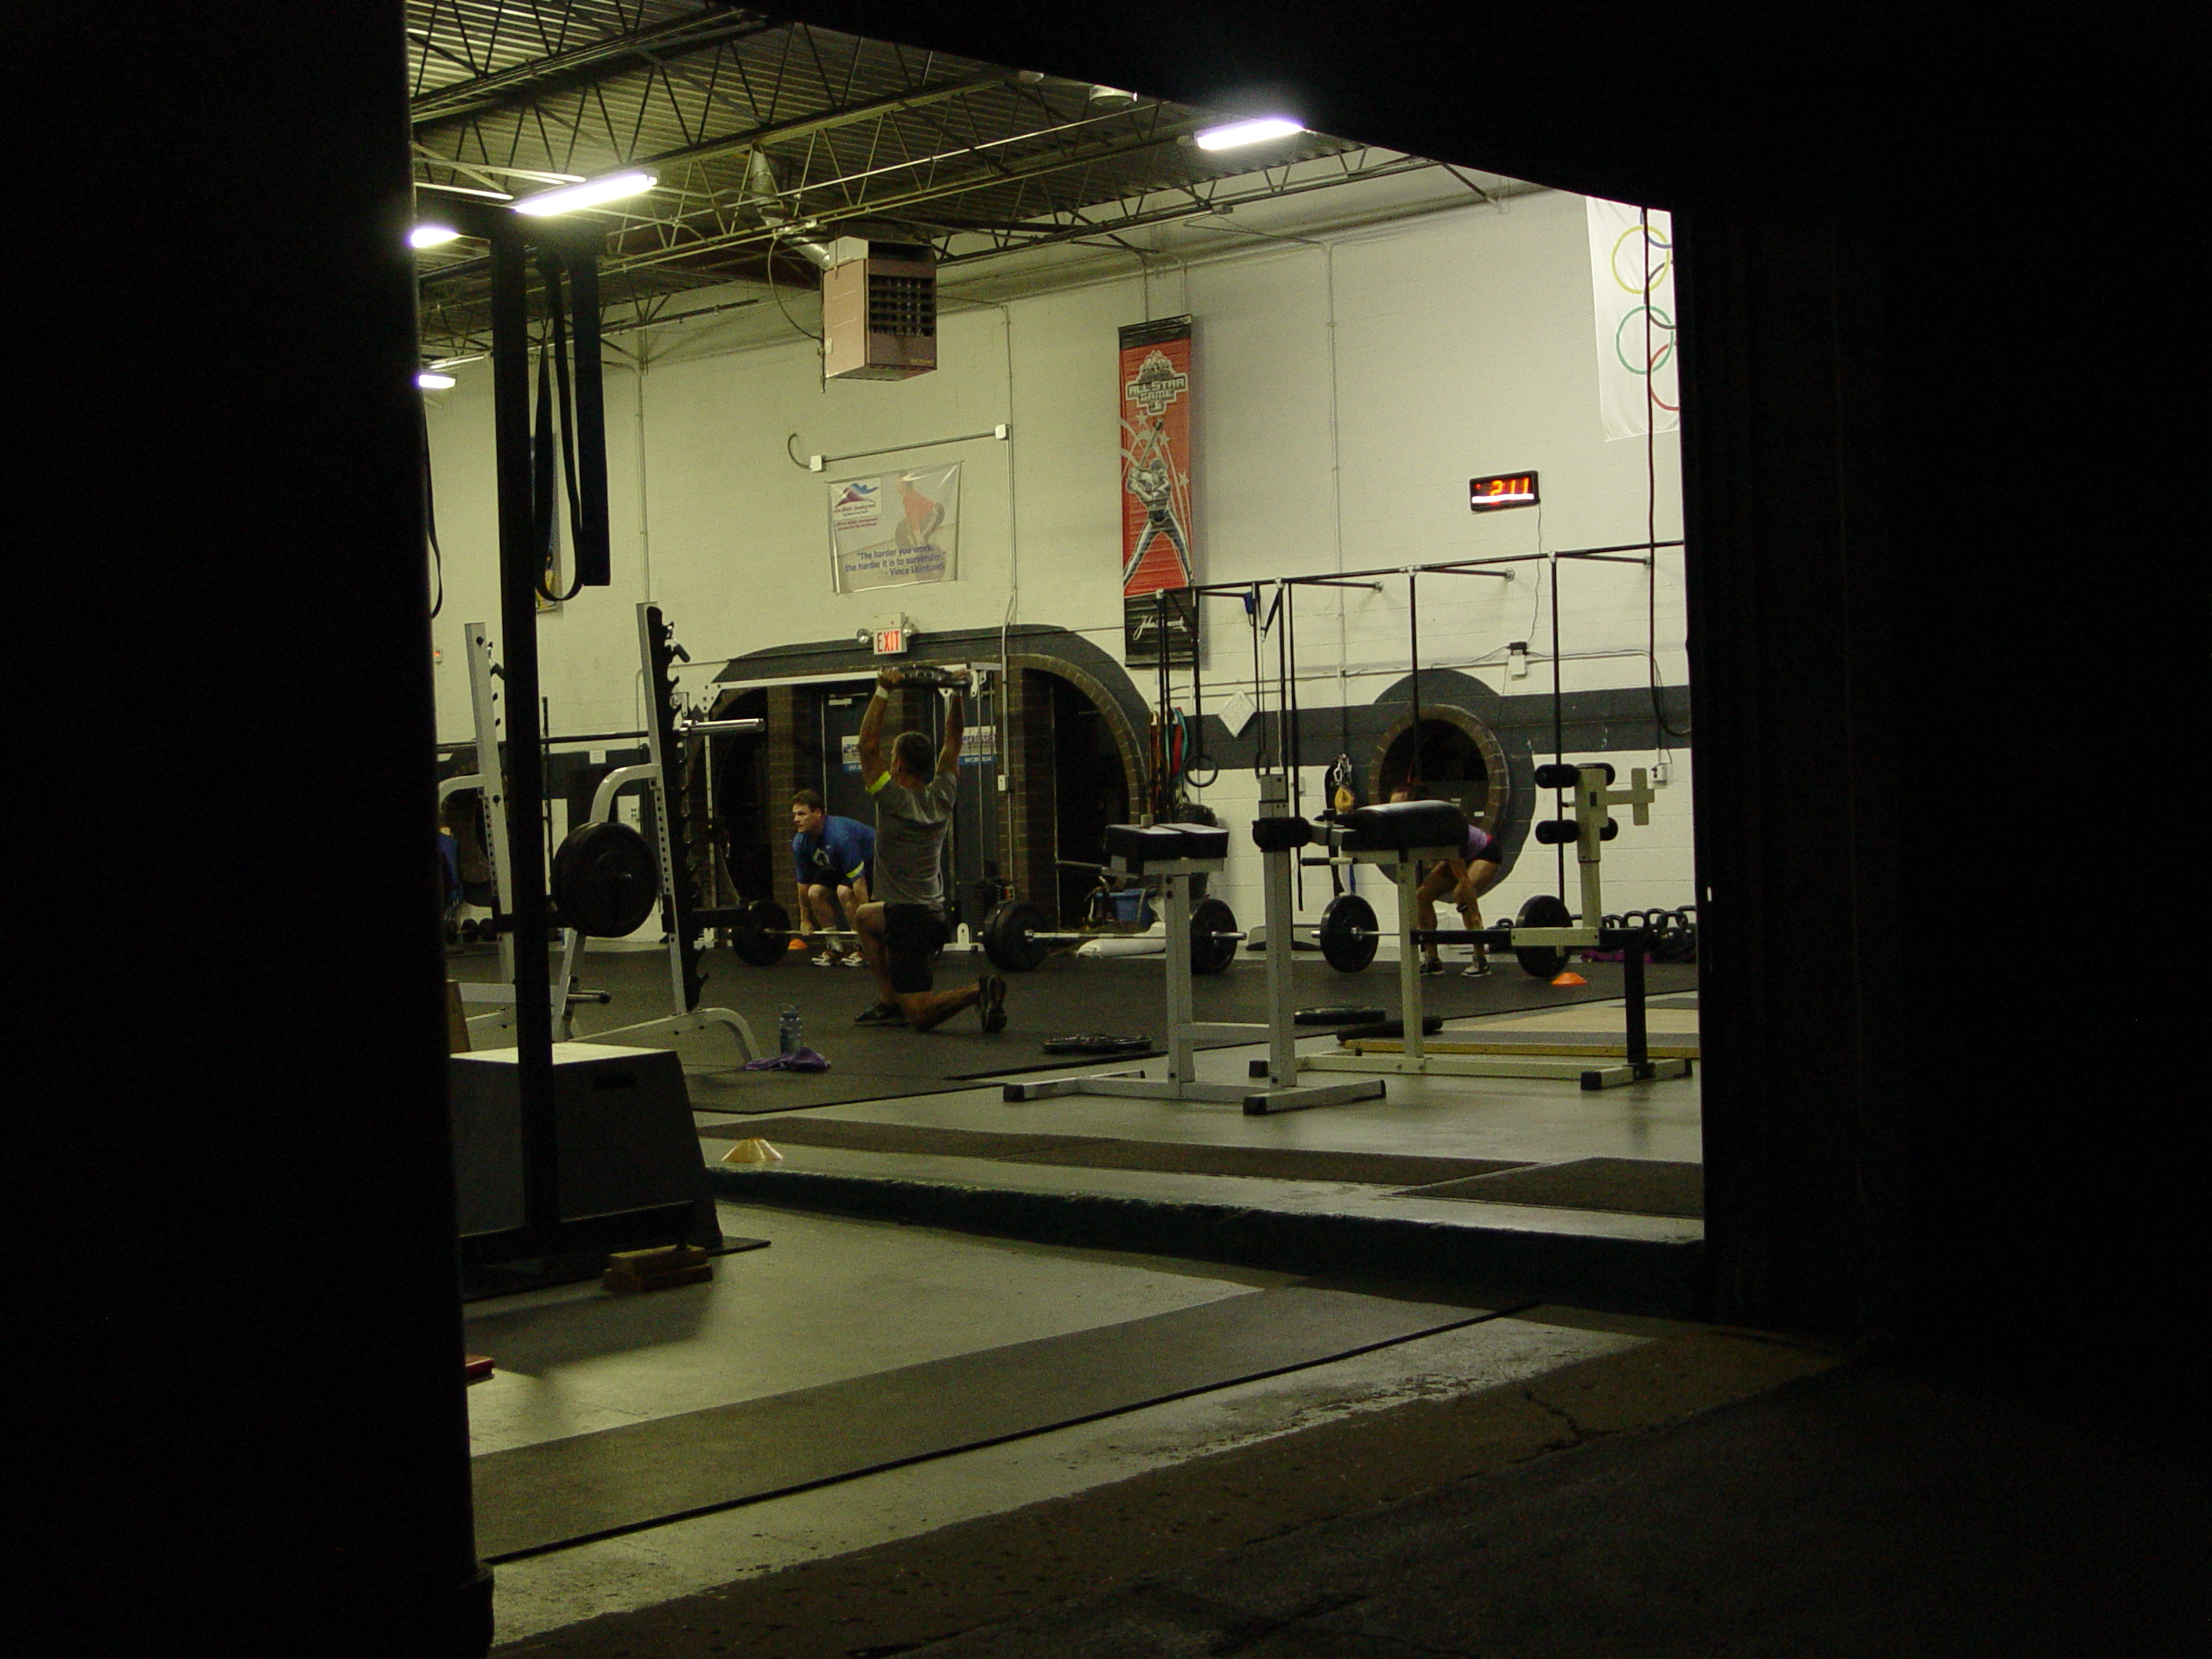 Rogue fitness garage gym courtesy of paul rivera start facebook